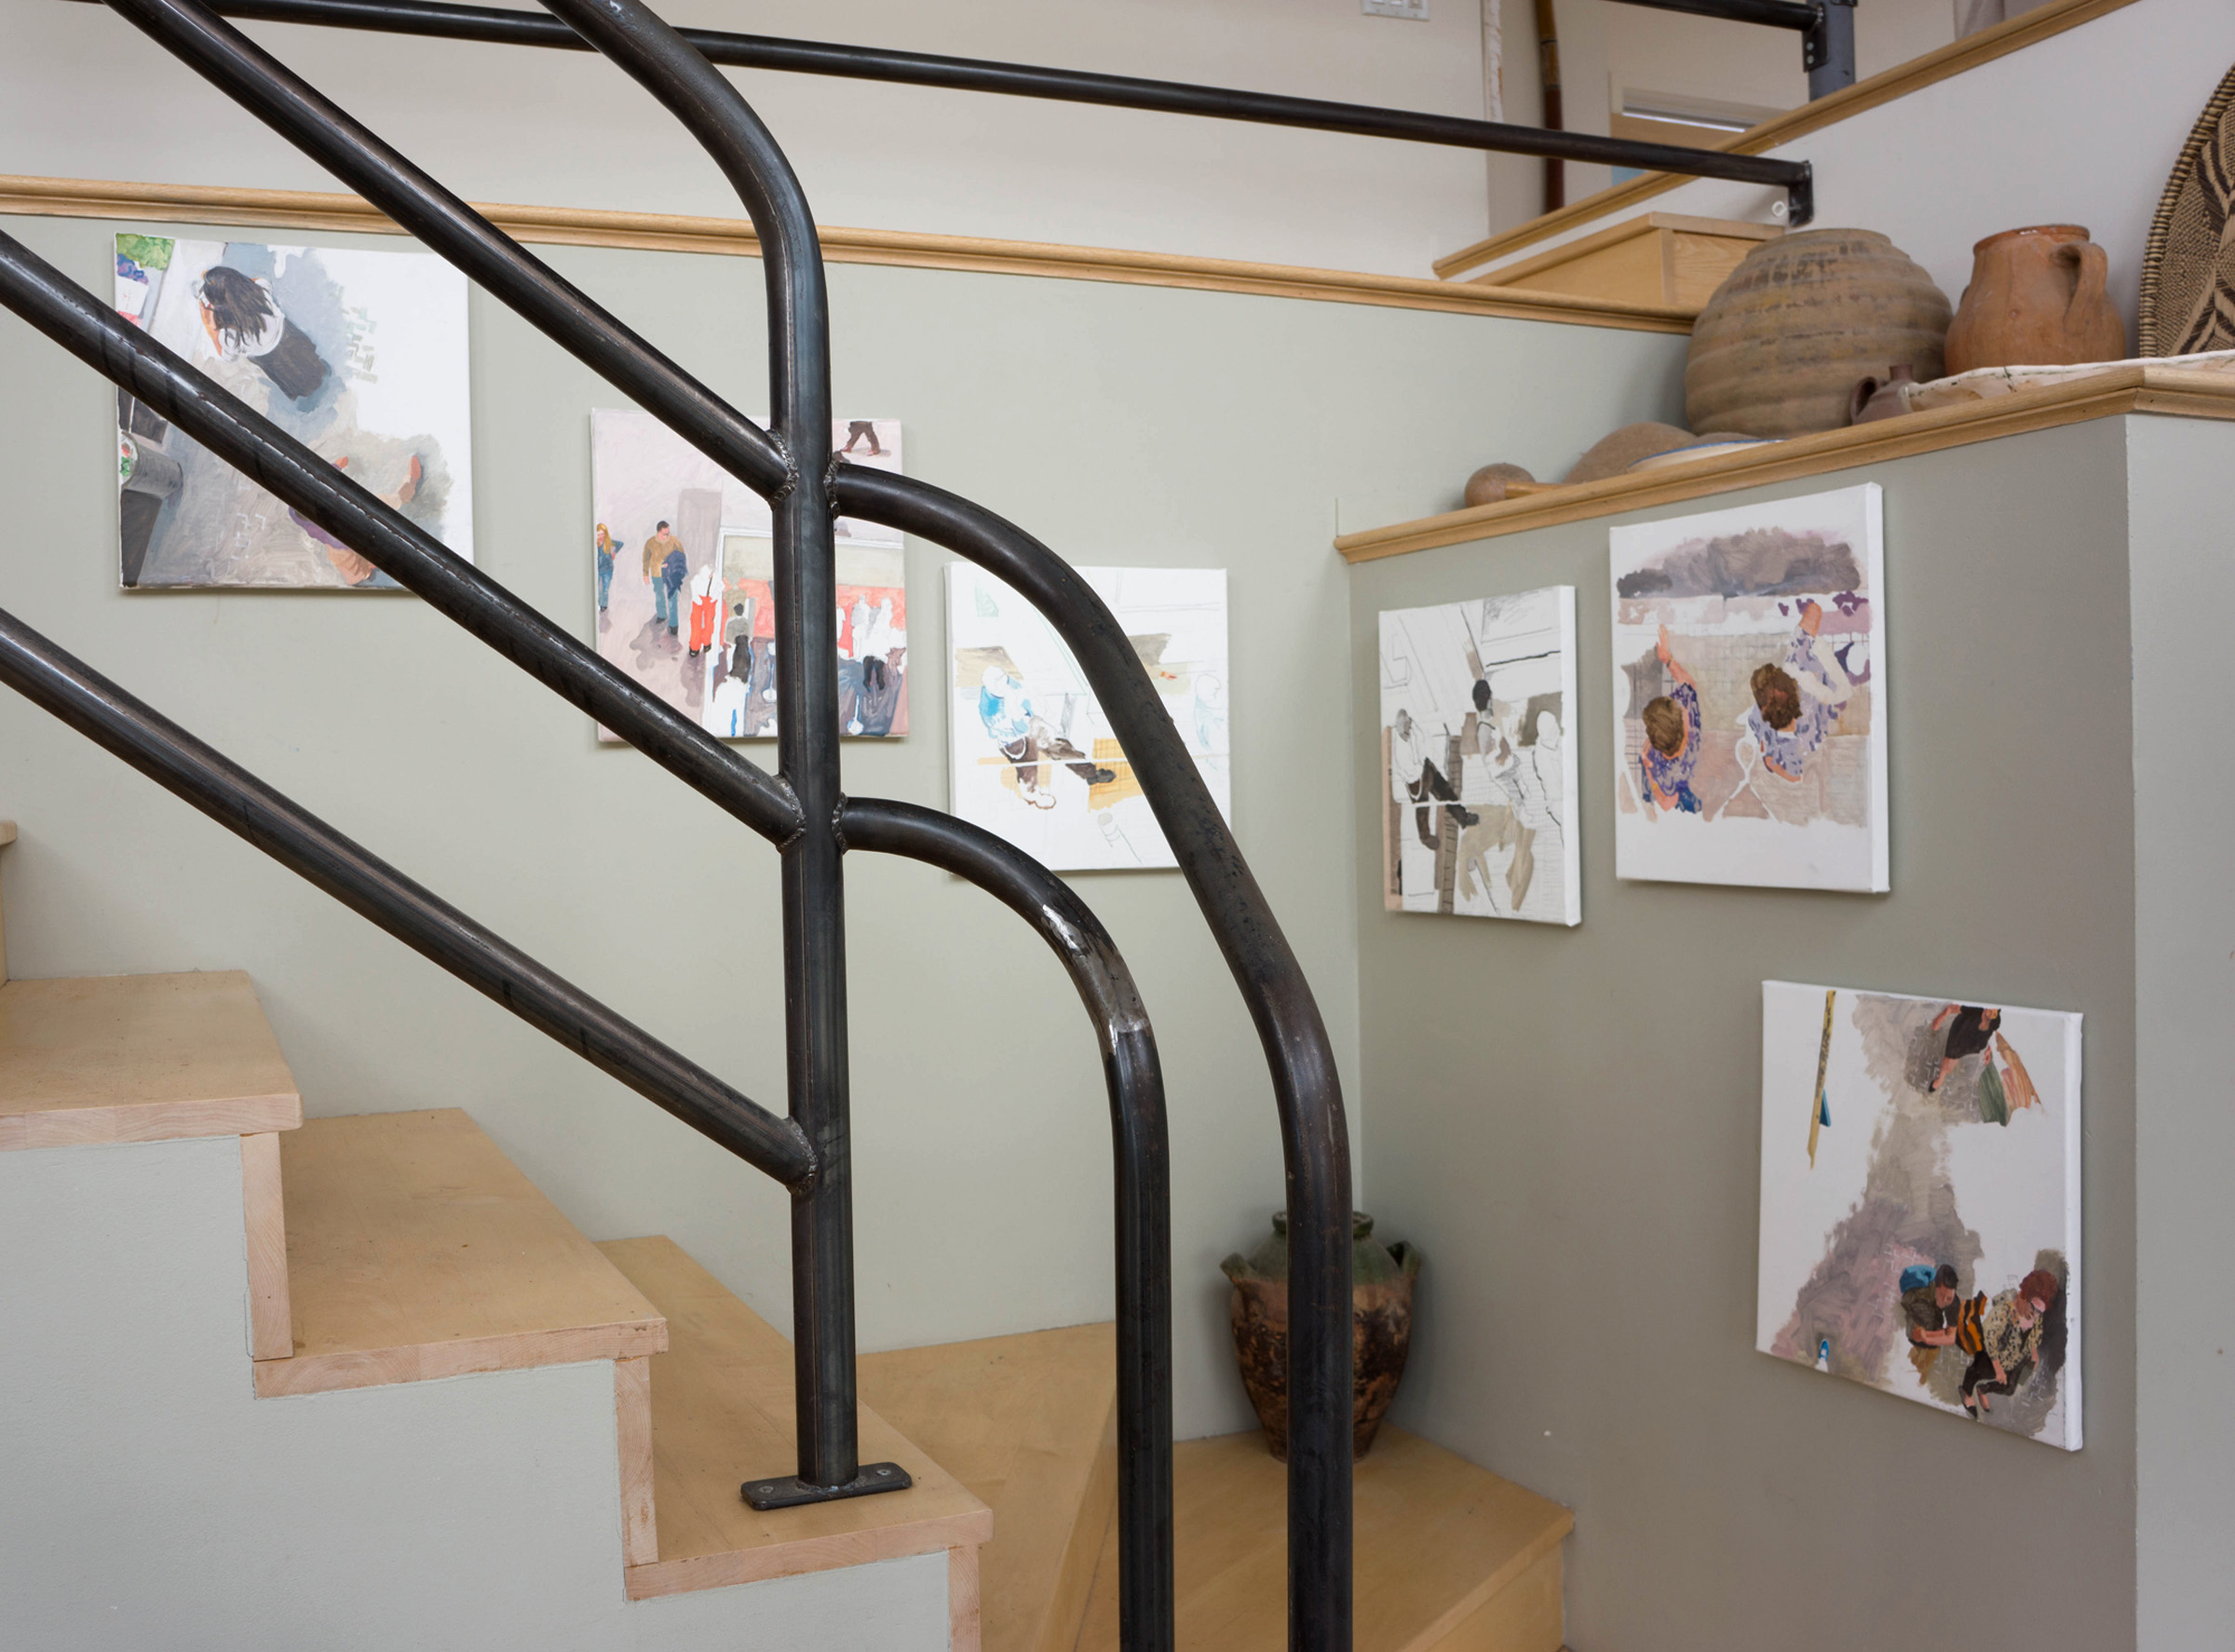 site-10-27-14 best left unsaid series on stairs-2.jpg